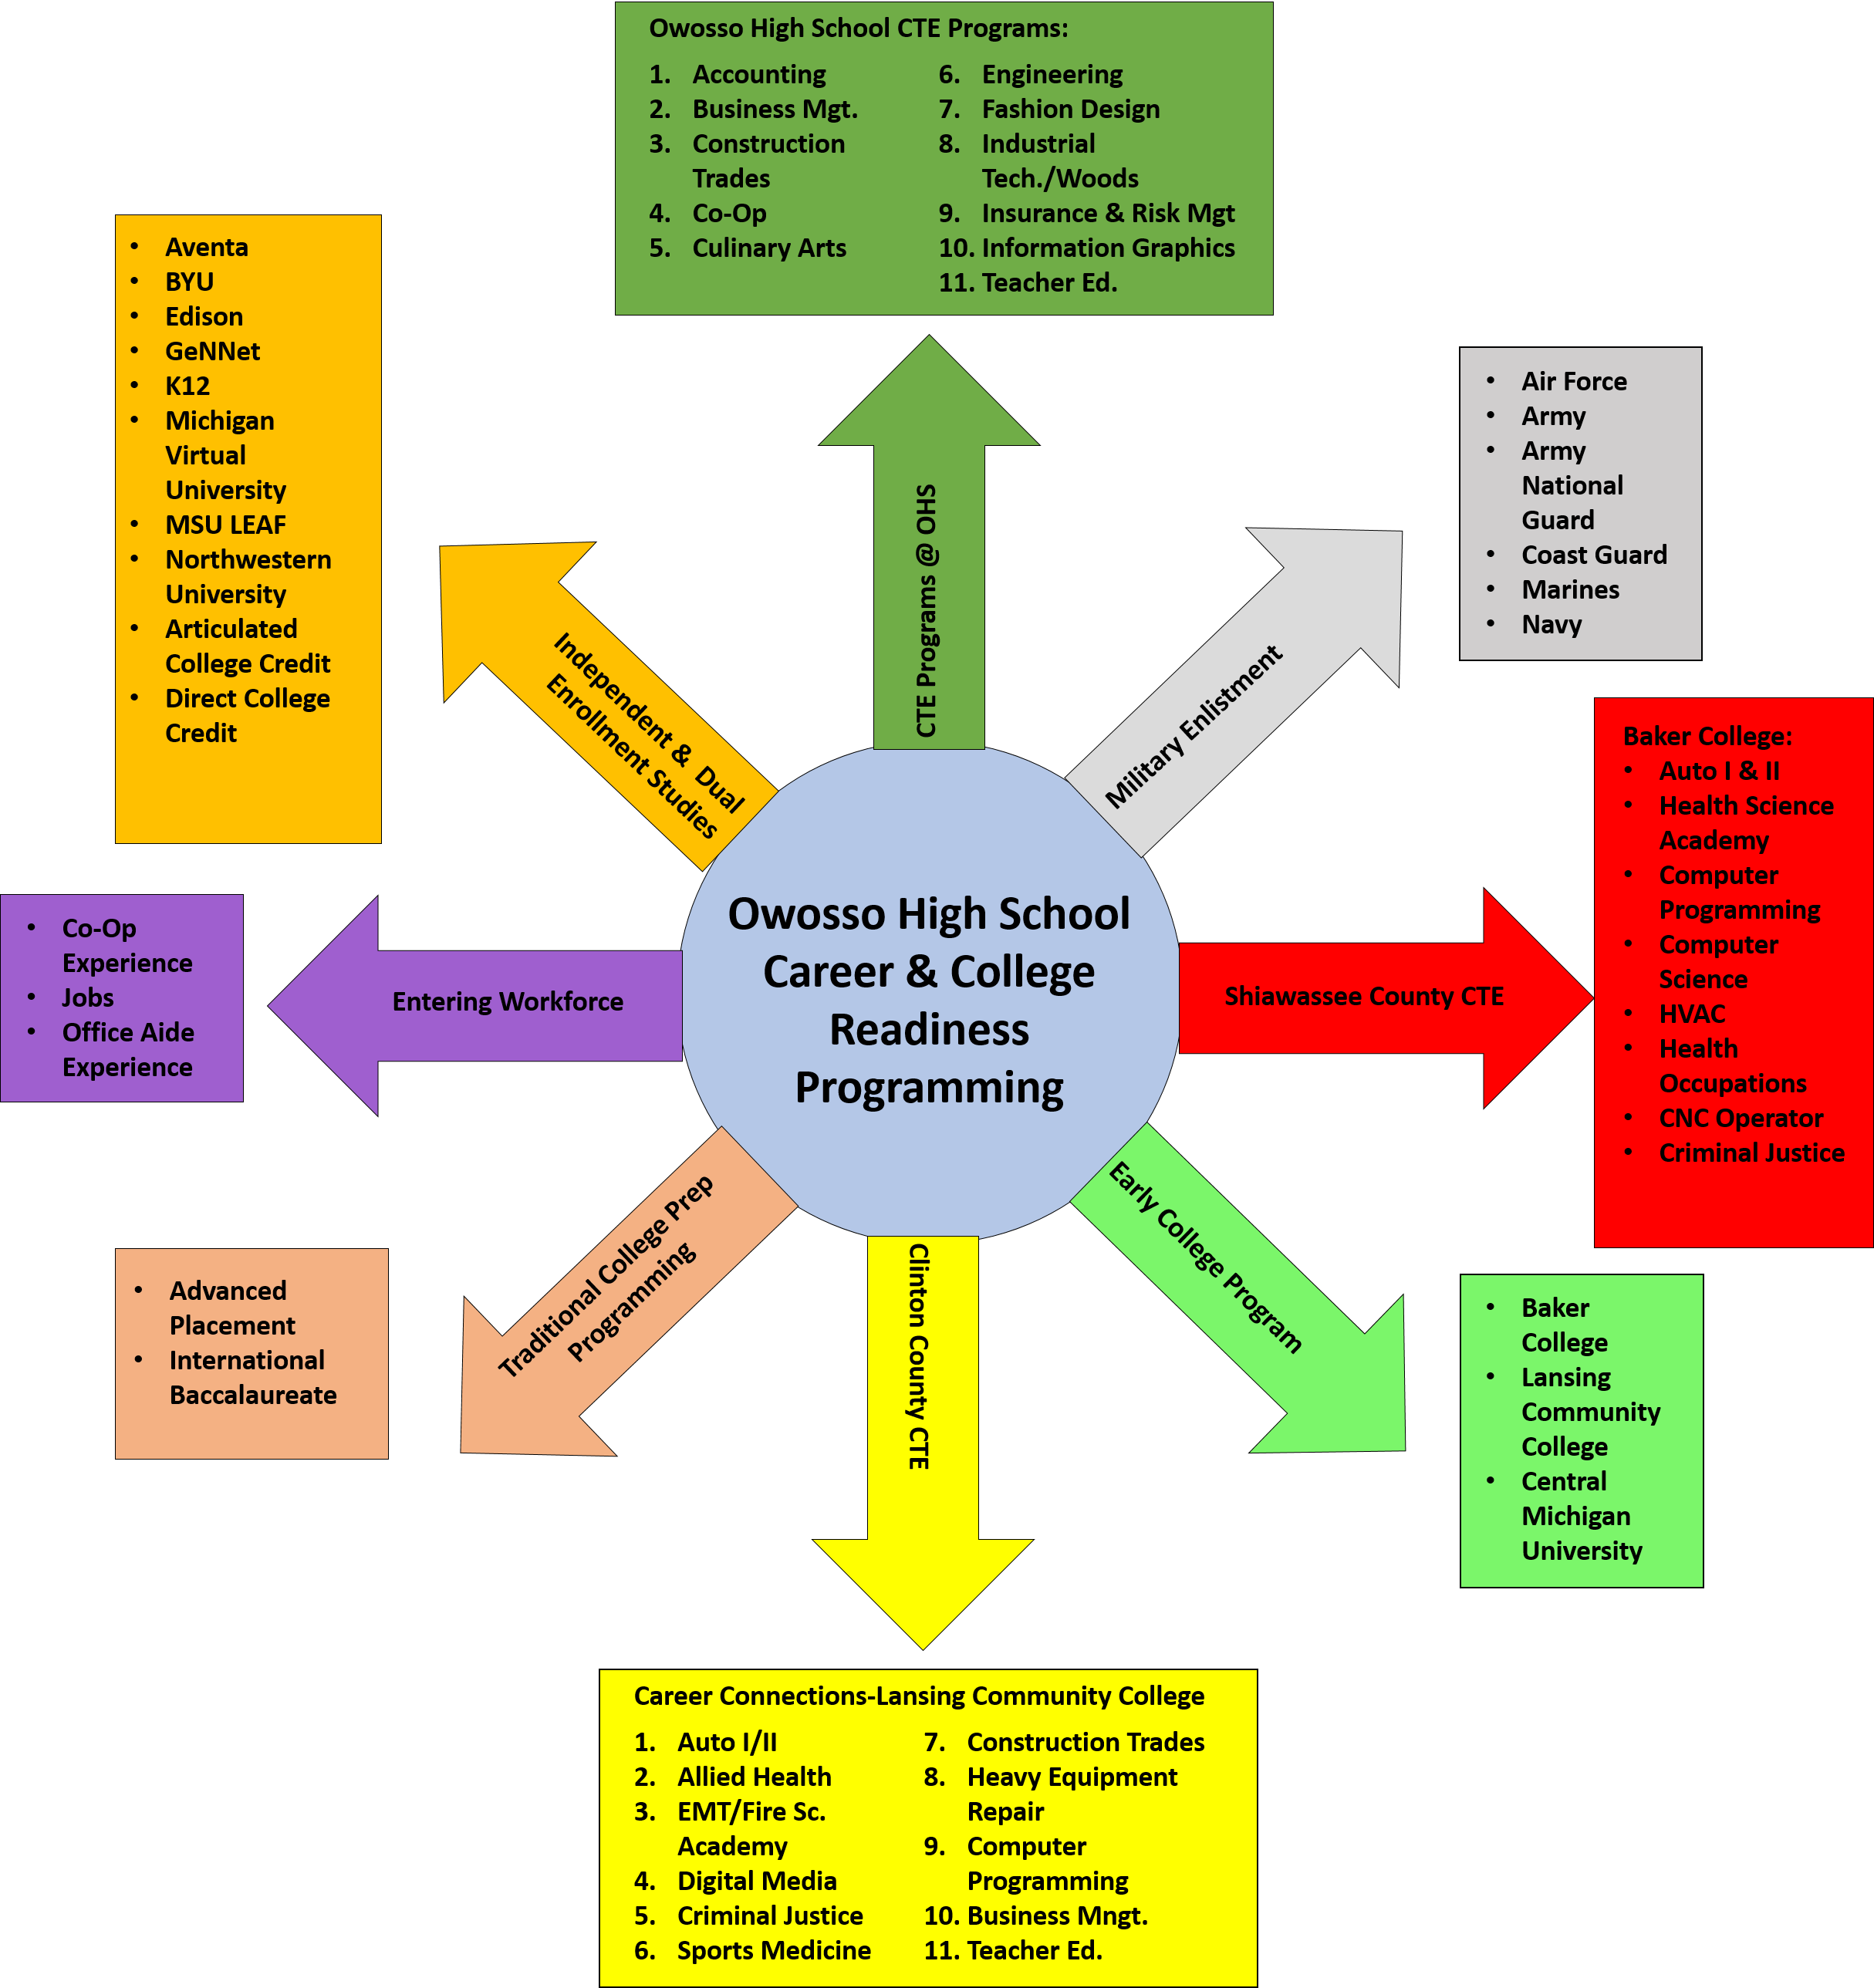 Career and college readiness programming diagram